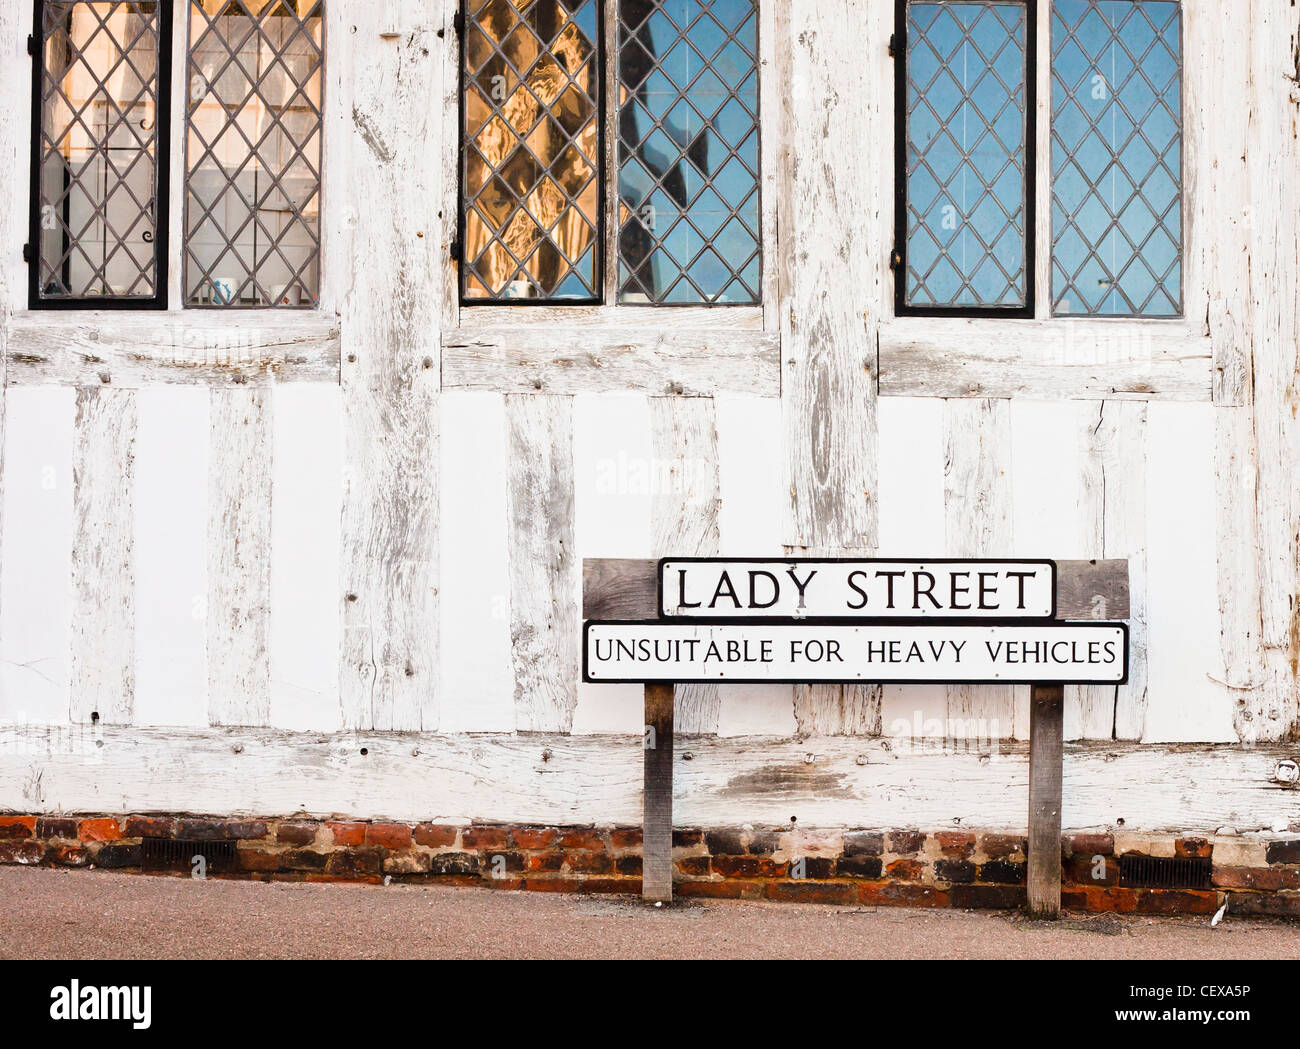 Street name and a road sign outside an old building in Lavenham, Suffolk, UK - Stock Image